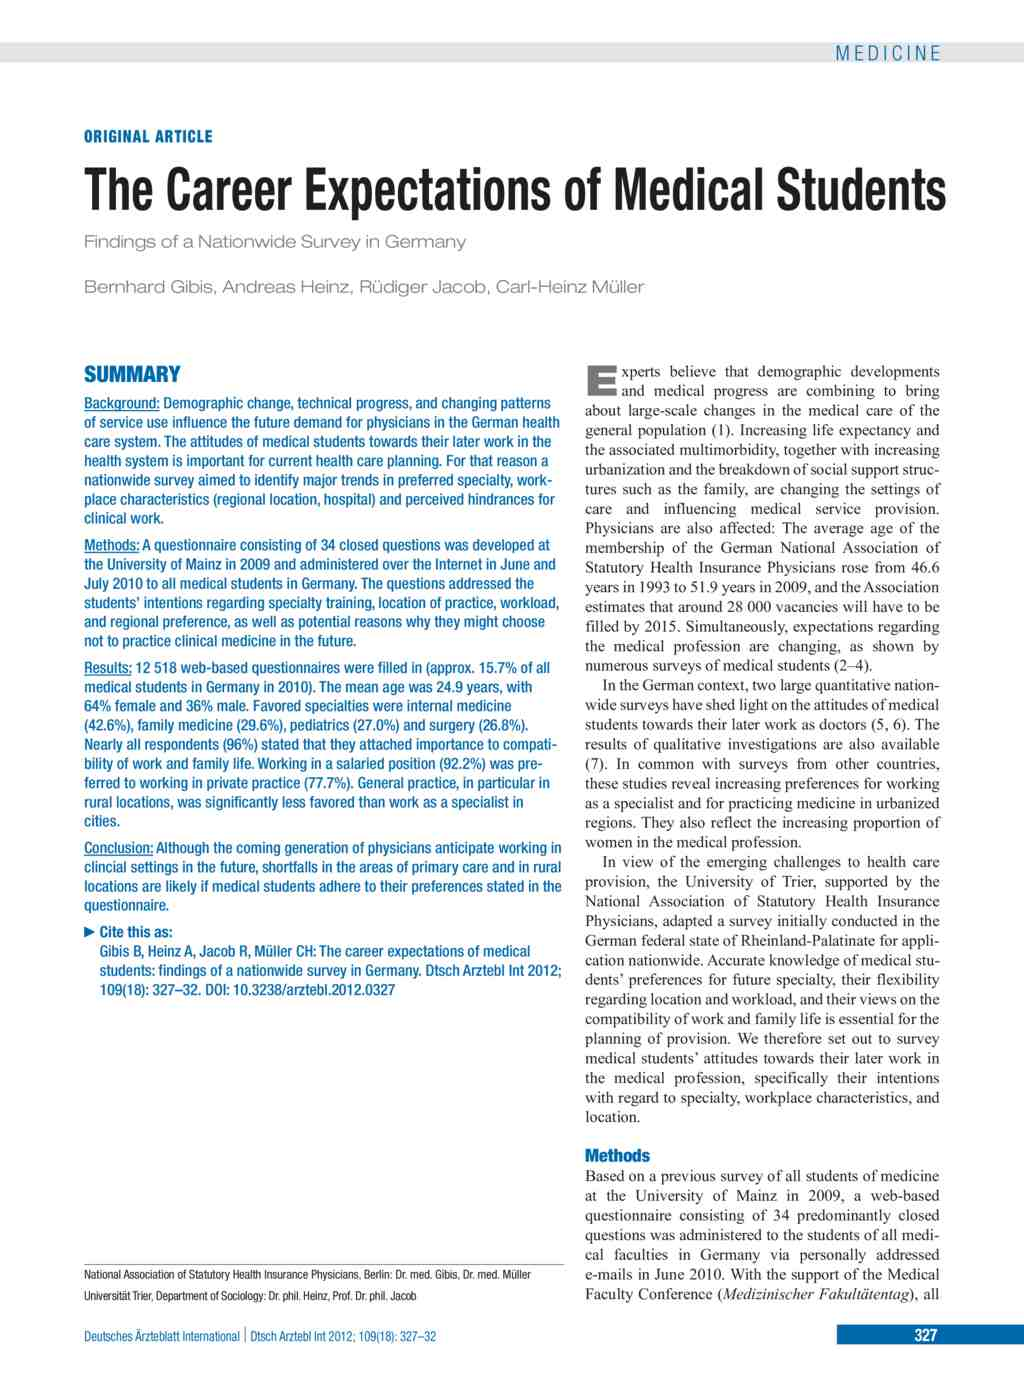 The Career Expectations of Medical Students (04 05 2012)